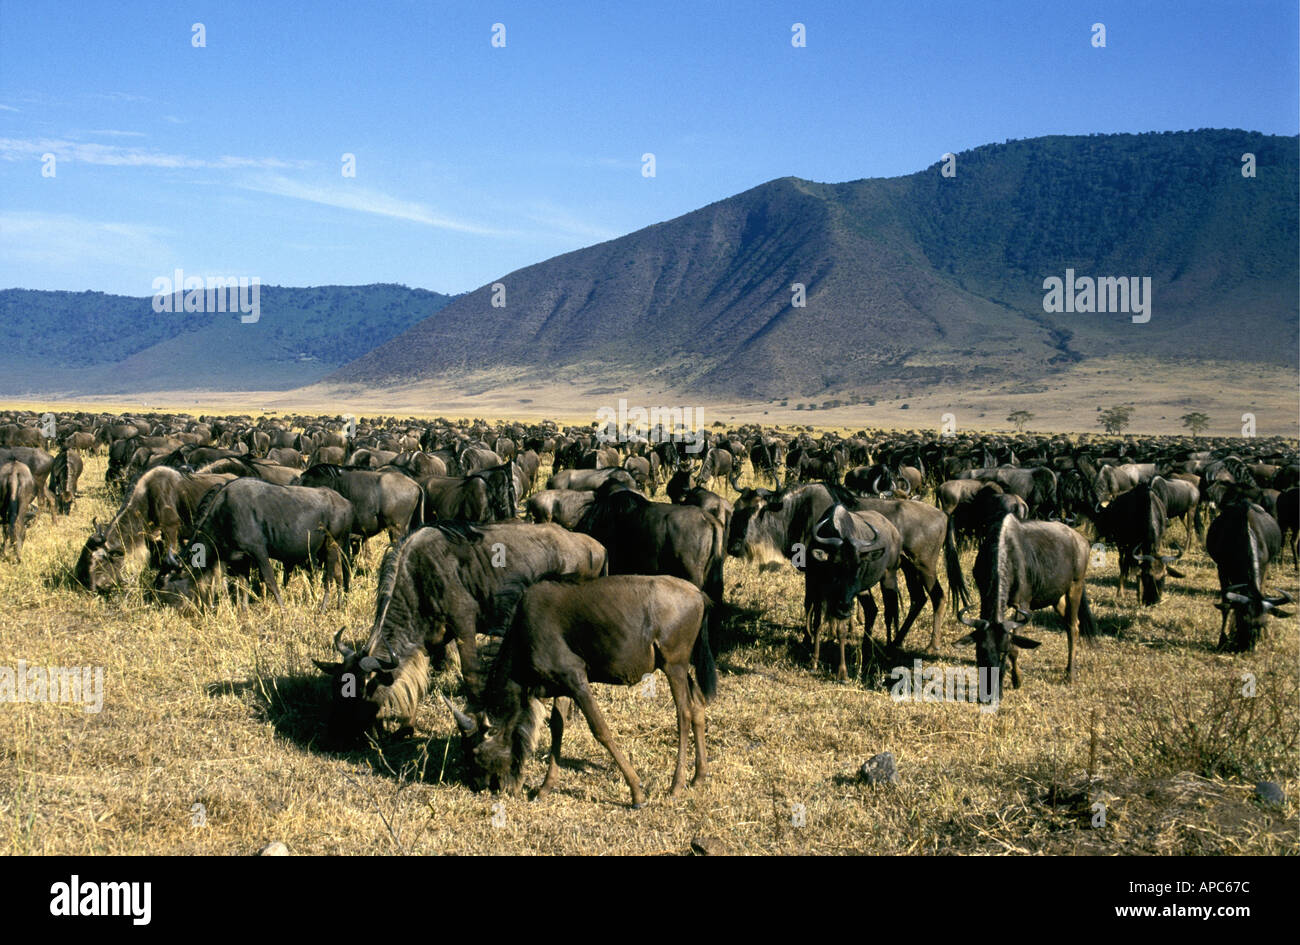 A herd of several thousand wildebeest or White Bearded Gnu in Ngorongoro Crater Tanzania East Africa - Stock Image